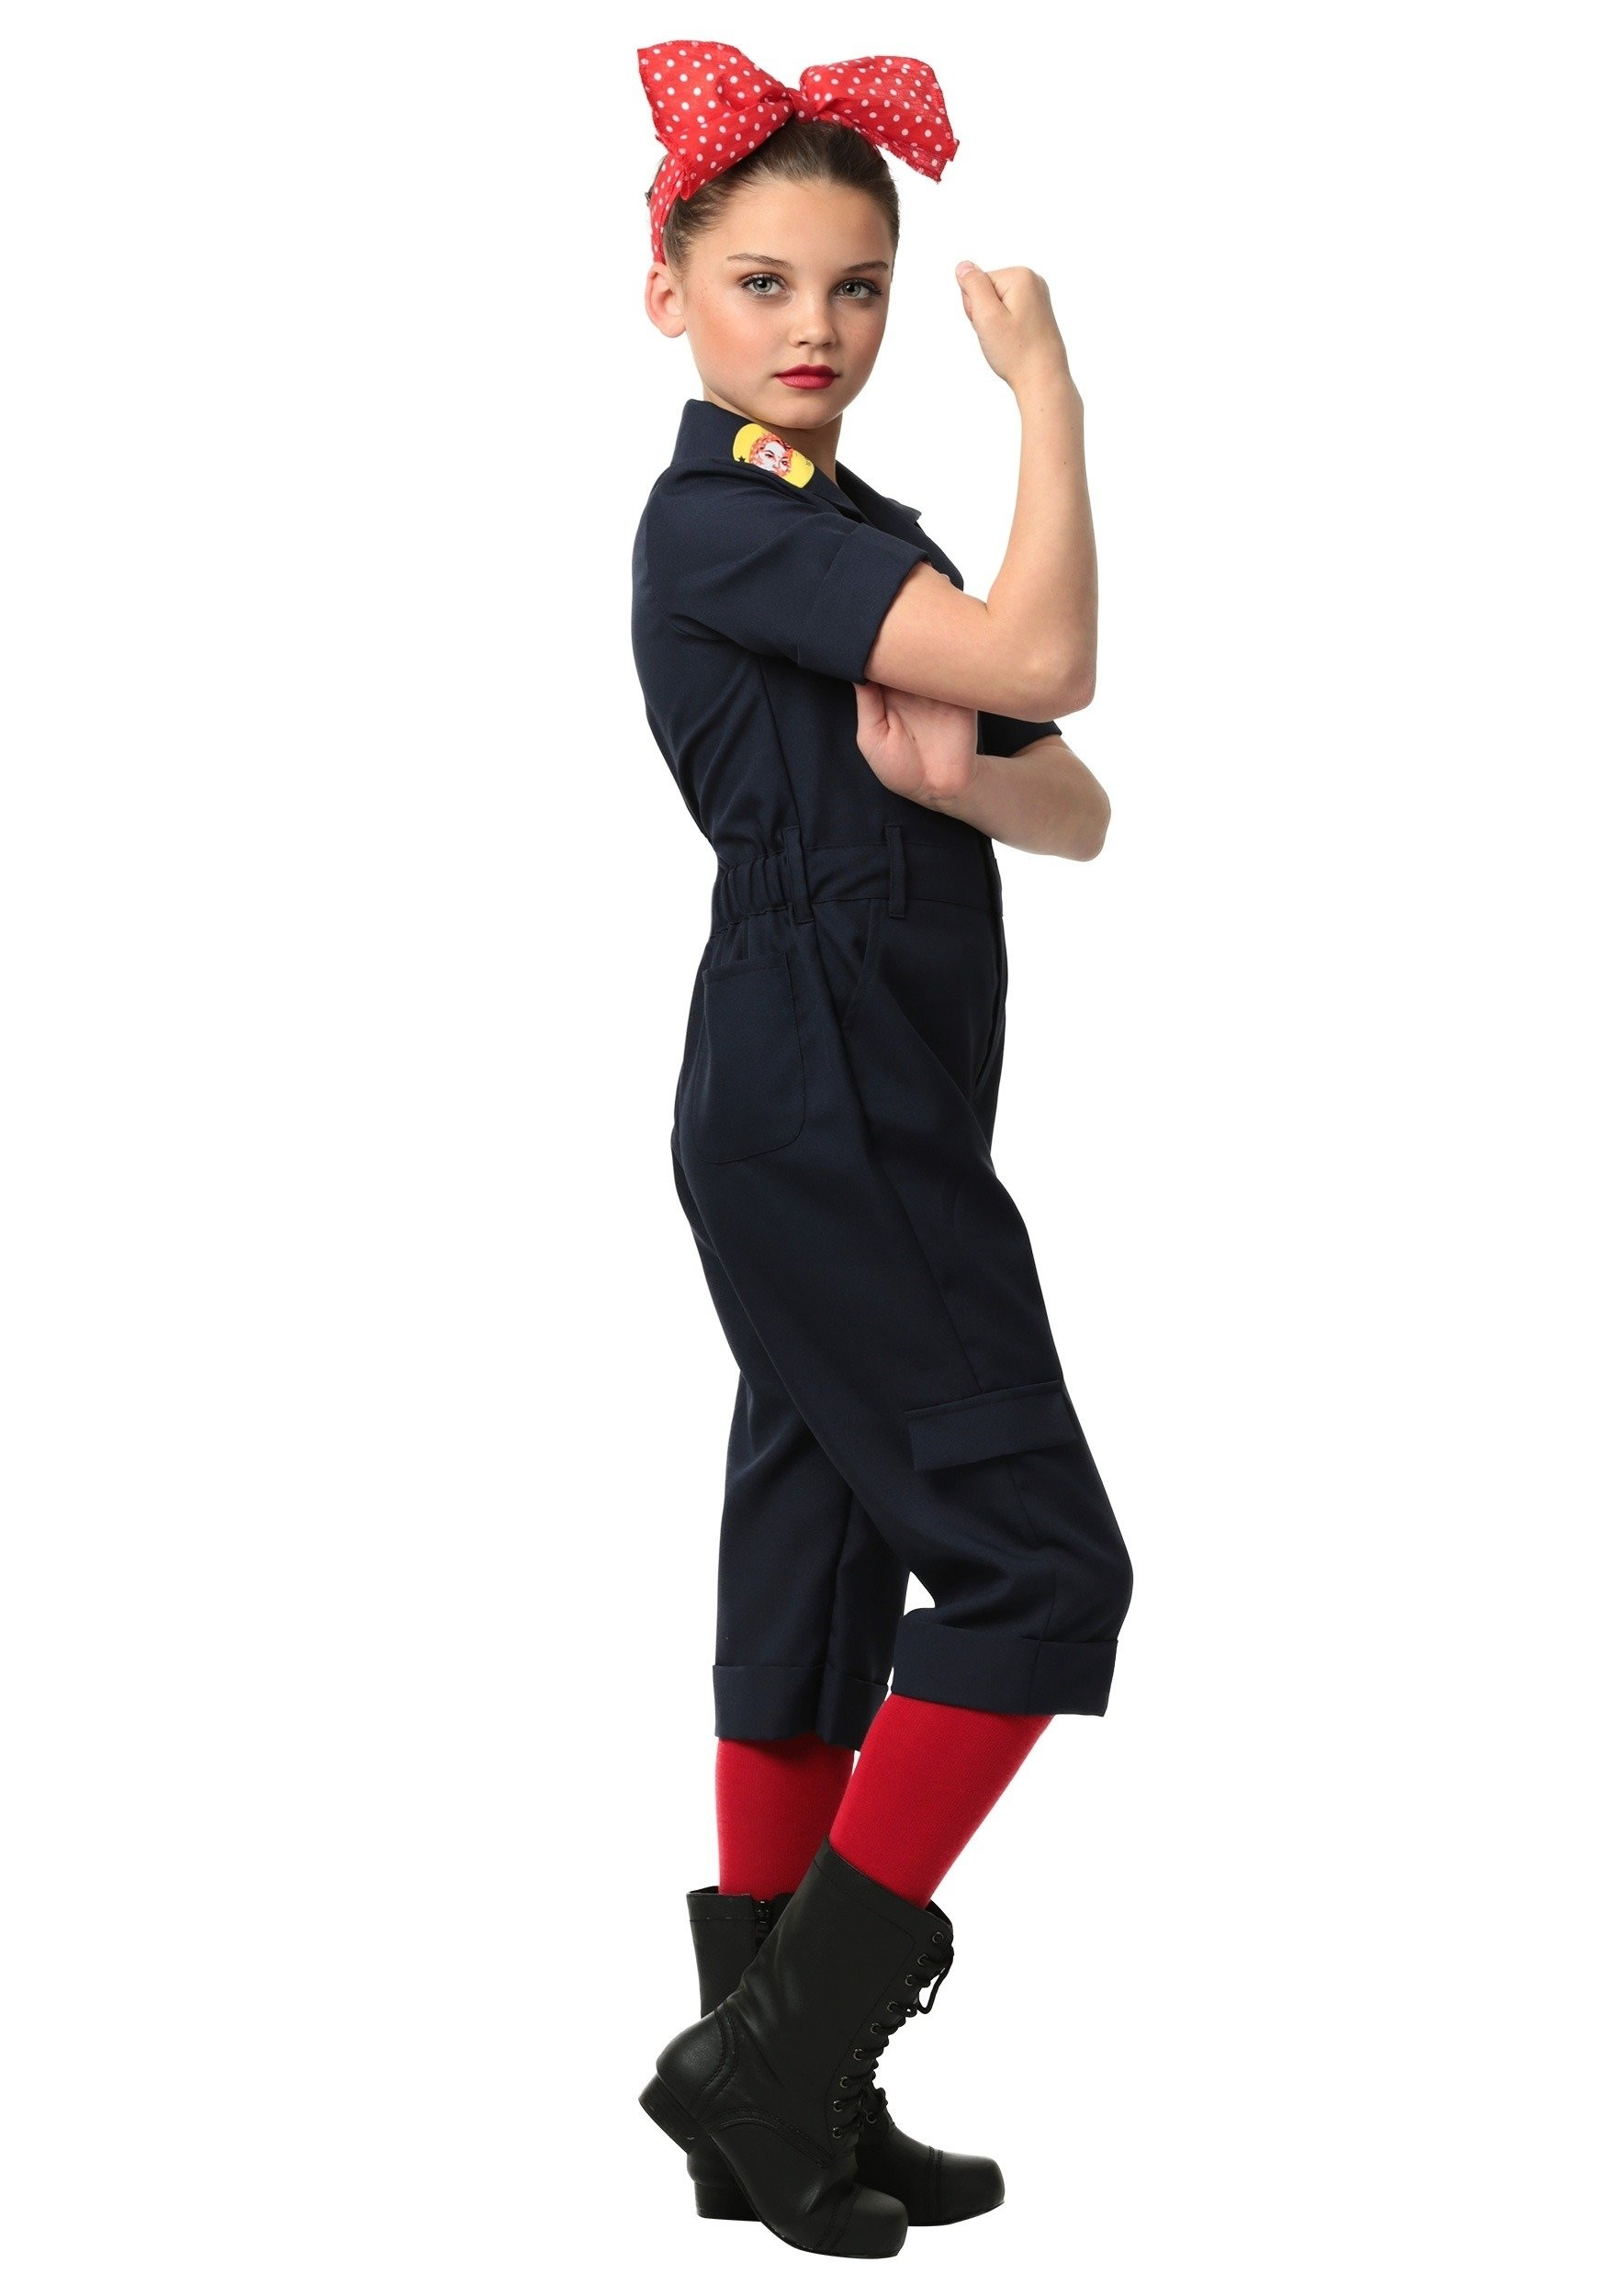 10 Great Halloween Costumes Ideas For Boys child hardworking lady costume 2 2021